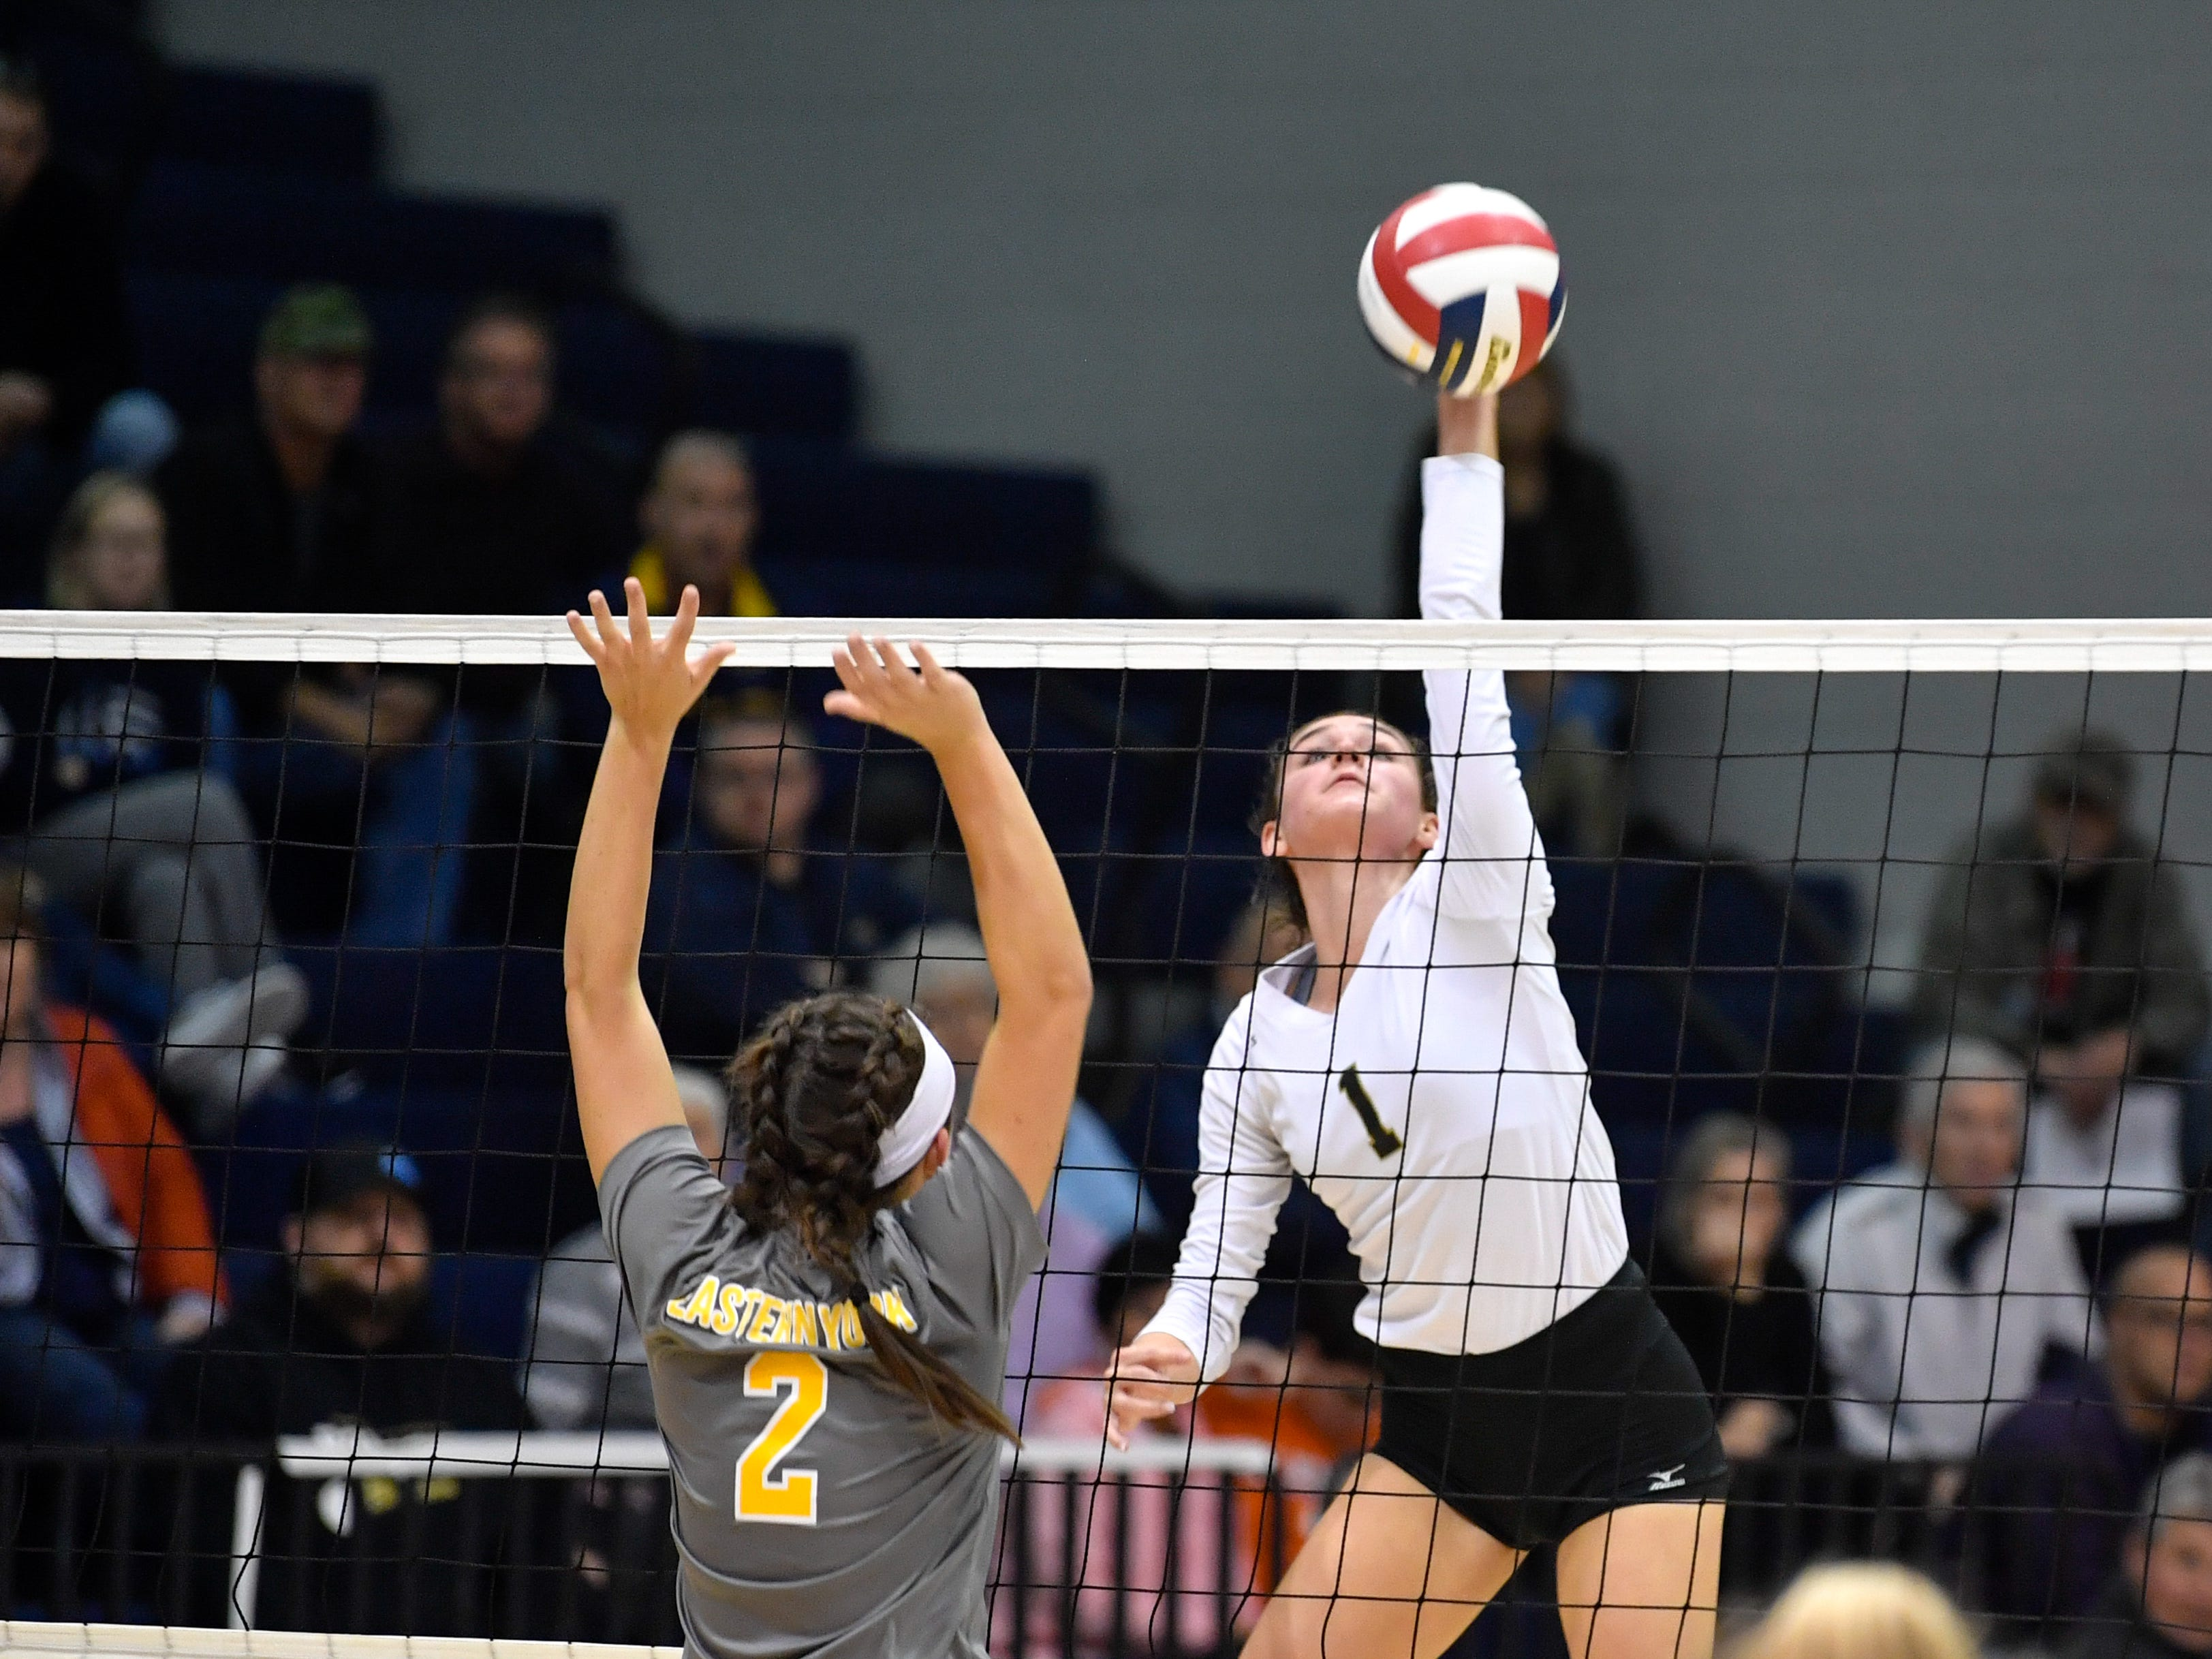 Maddie Clabaugh (1) looks to score a point during the YAIAA league volleyball tournament semifinals between Eastern York and Delone Catholic, Tuesday, October 23, 2018. The Squirettes defeated the Golden Knights 3-2.